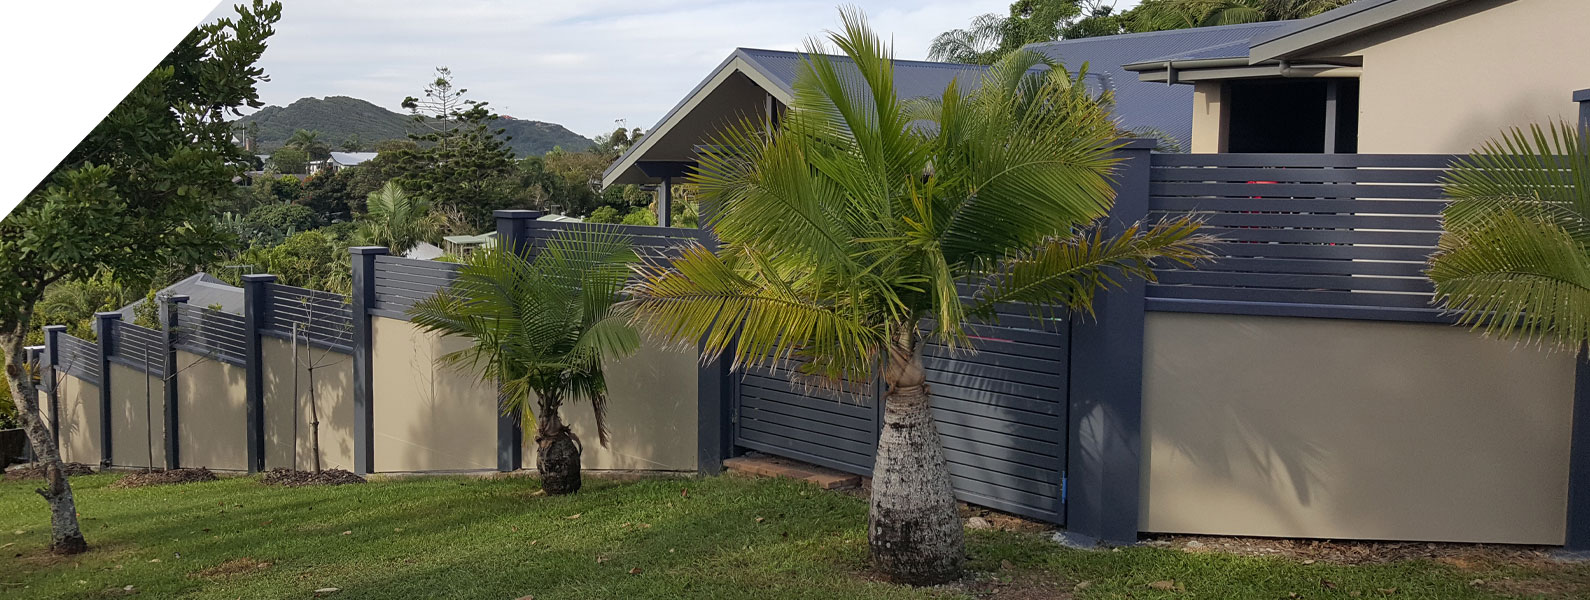 Get a quote on our residential modular sound proof fence panel system. Smartly designed, cost effective DIY acoustic modular fencing system easy & fast to install.